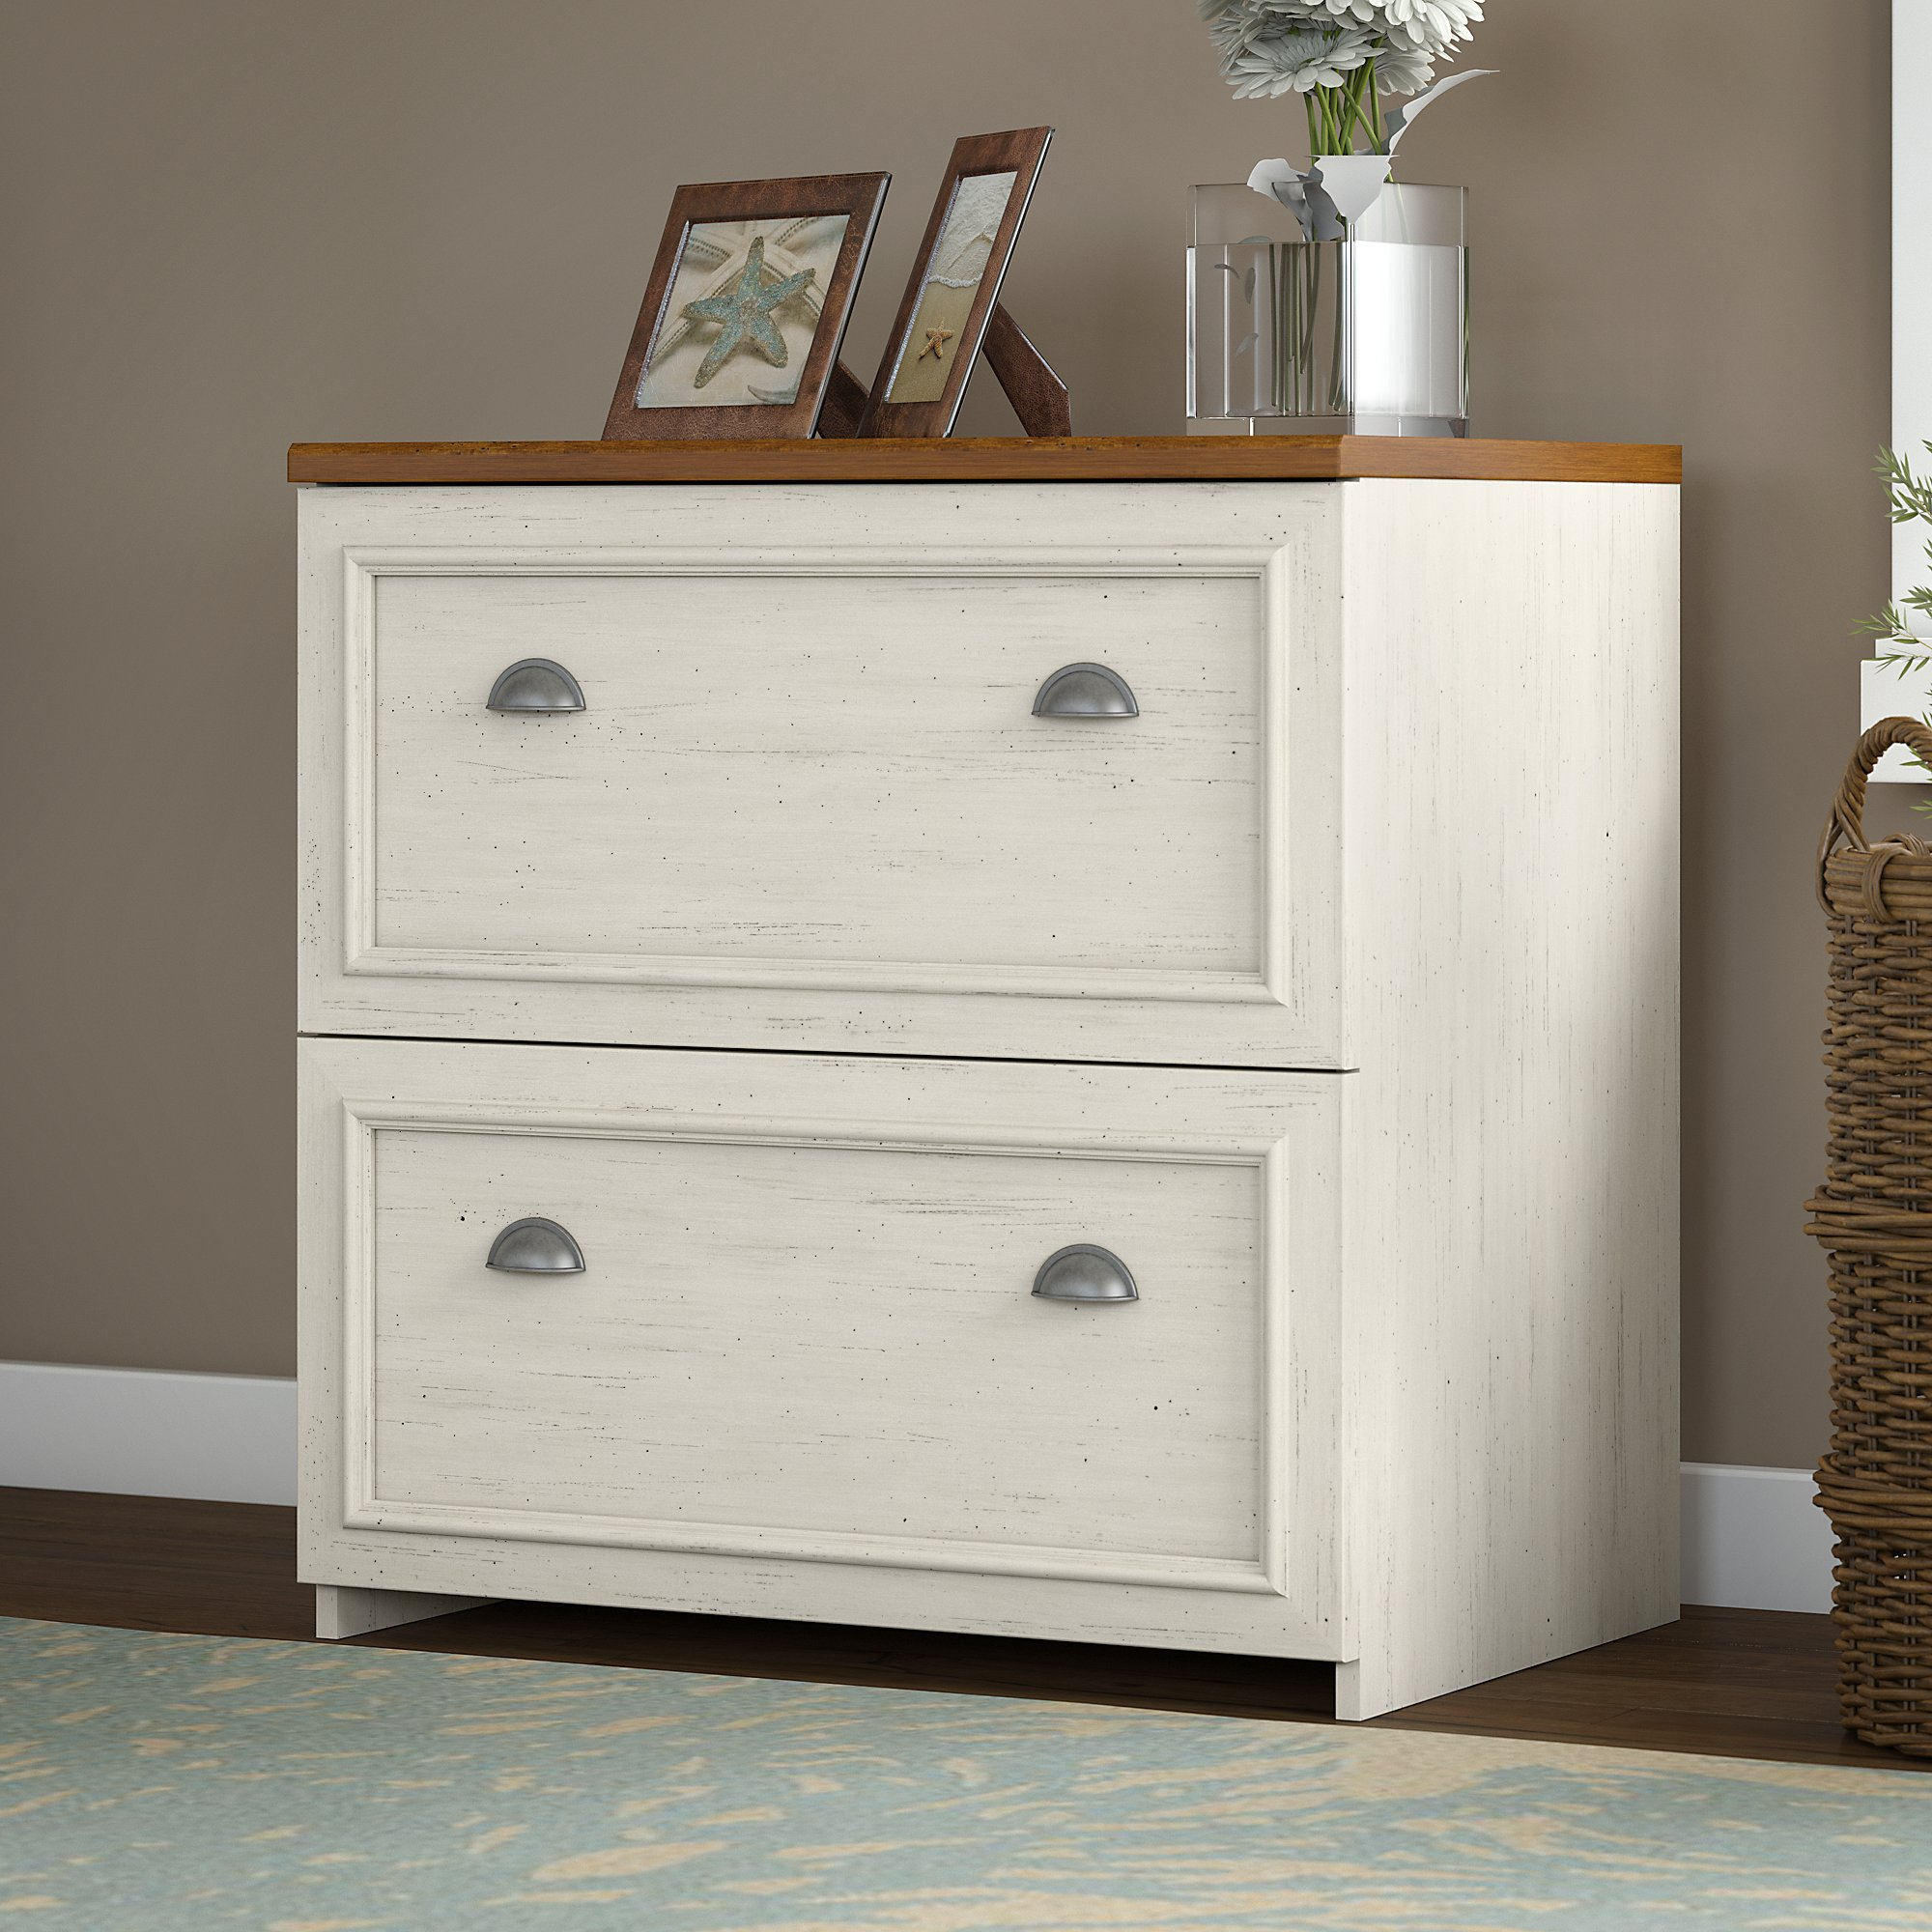 Beautiful Bush Furniture Fairview Lateral File Cabinet In Antique White